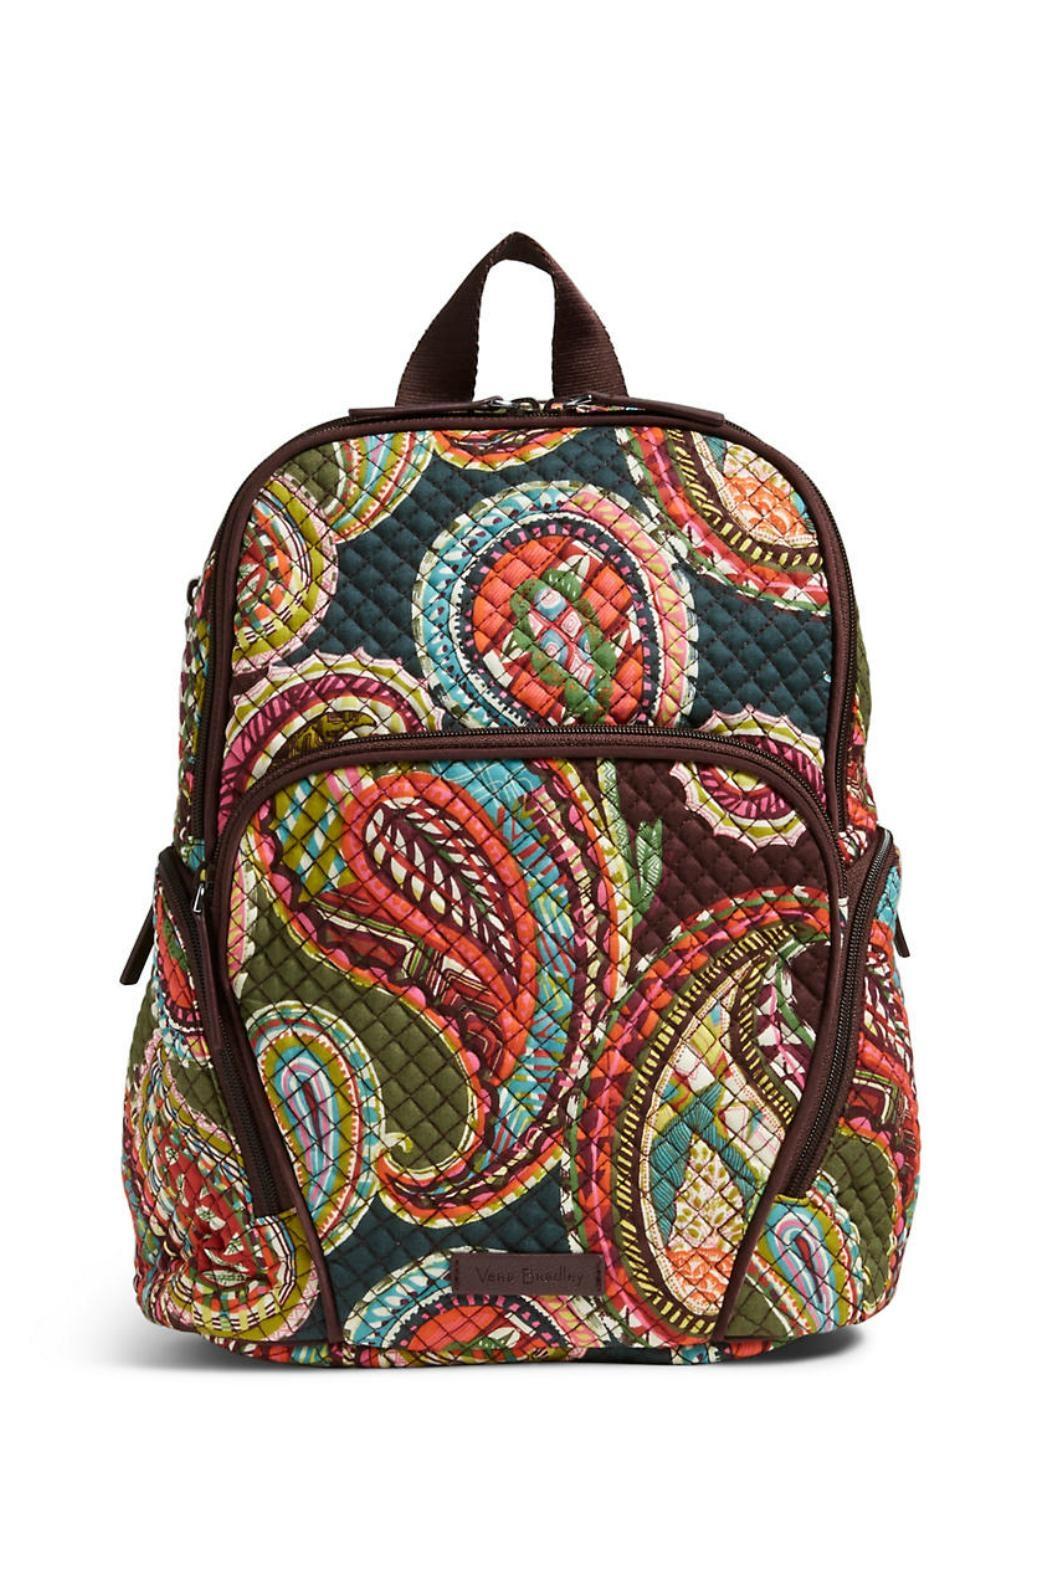 7ef812930 Vera Bradley Heirloom Paisley Hadley Backpack - Front Cropped Image